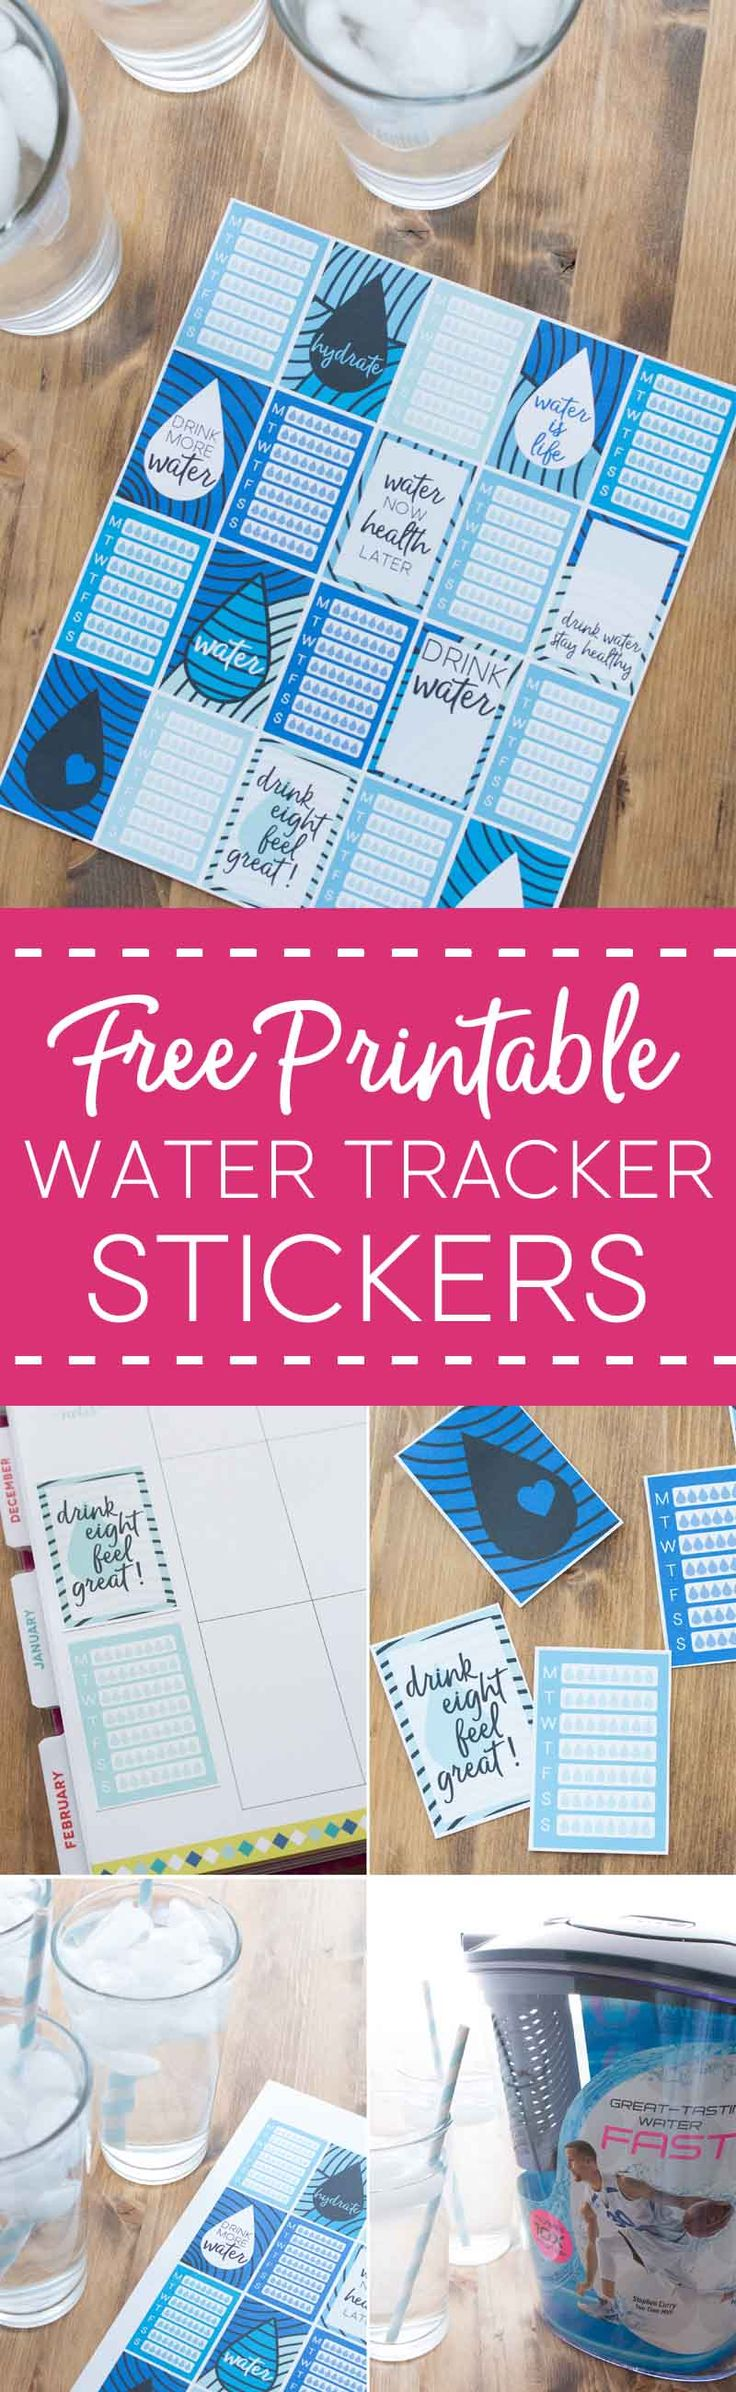 Free Printable Water Tracker Stickers {newsletter subscription required}